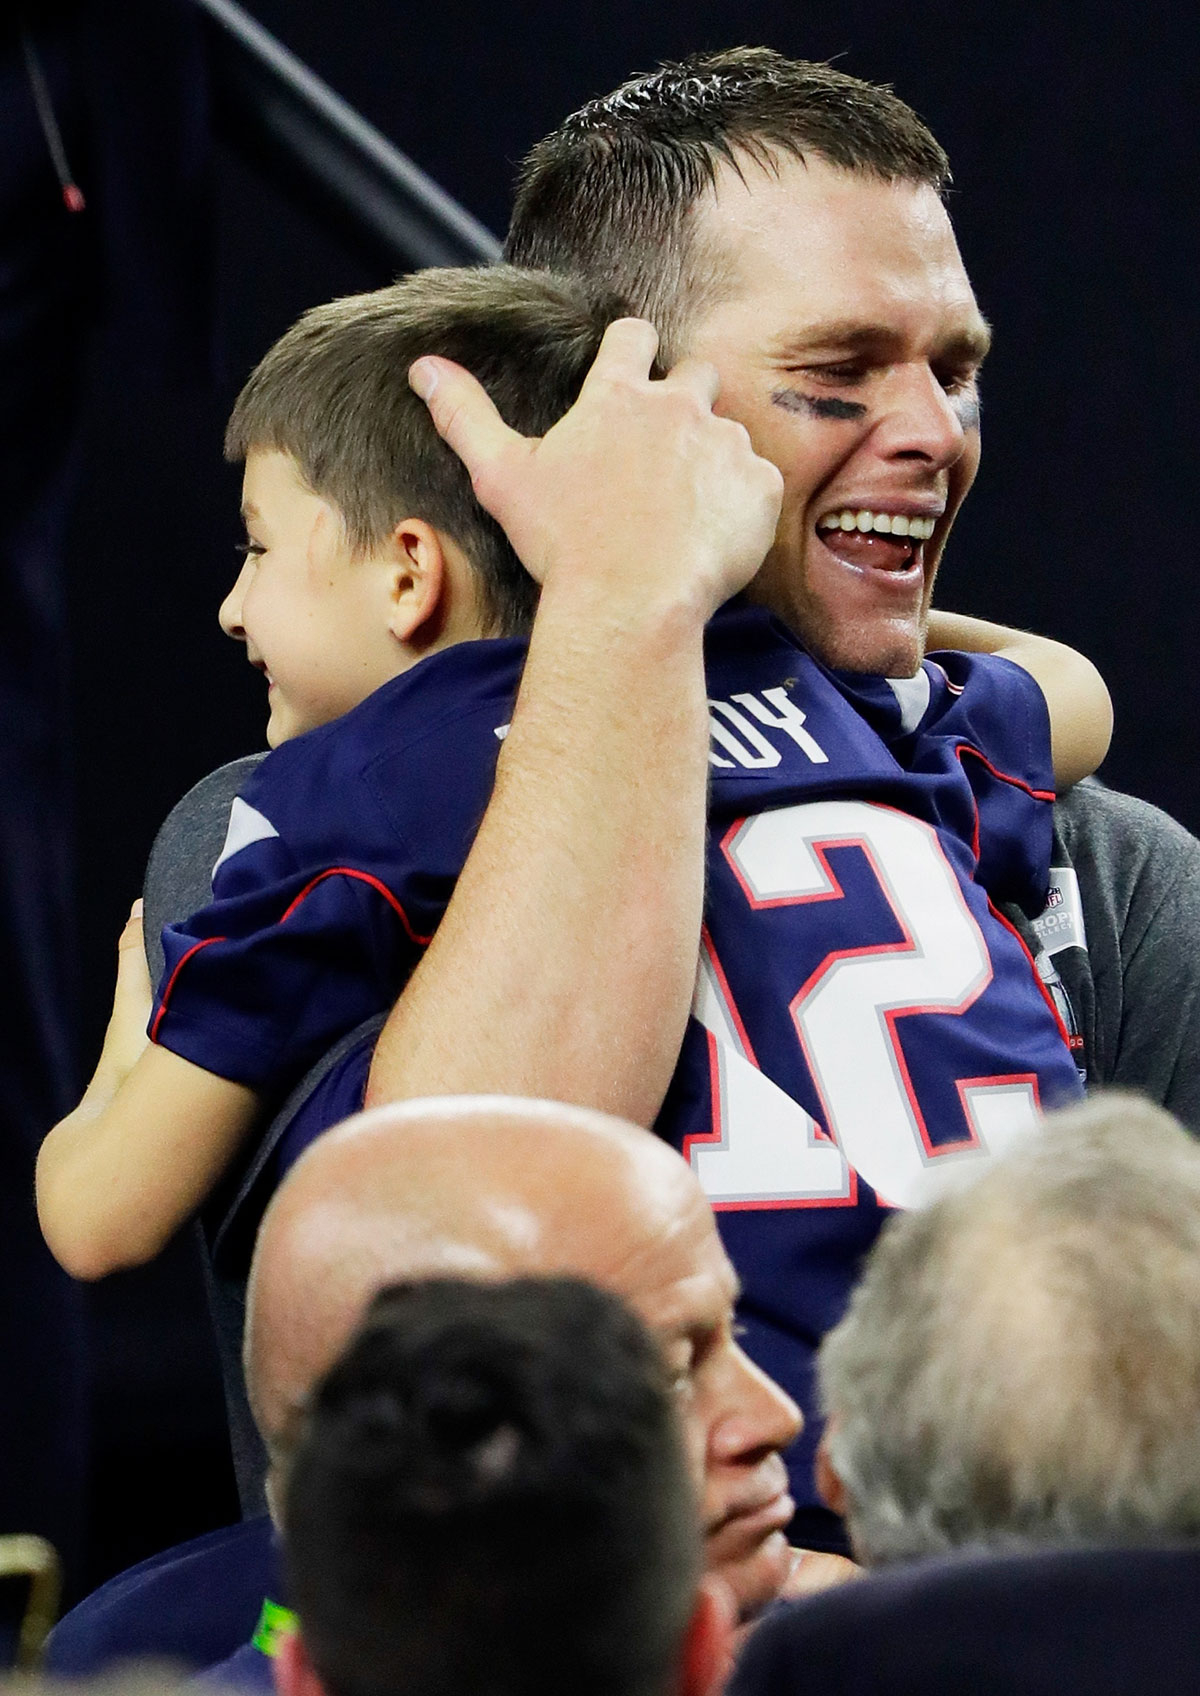 Tom Brady Breaks Down in Tears With His Family After Super Bowl Win